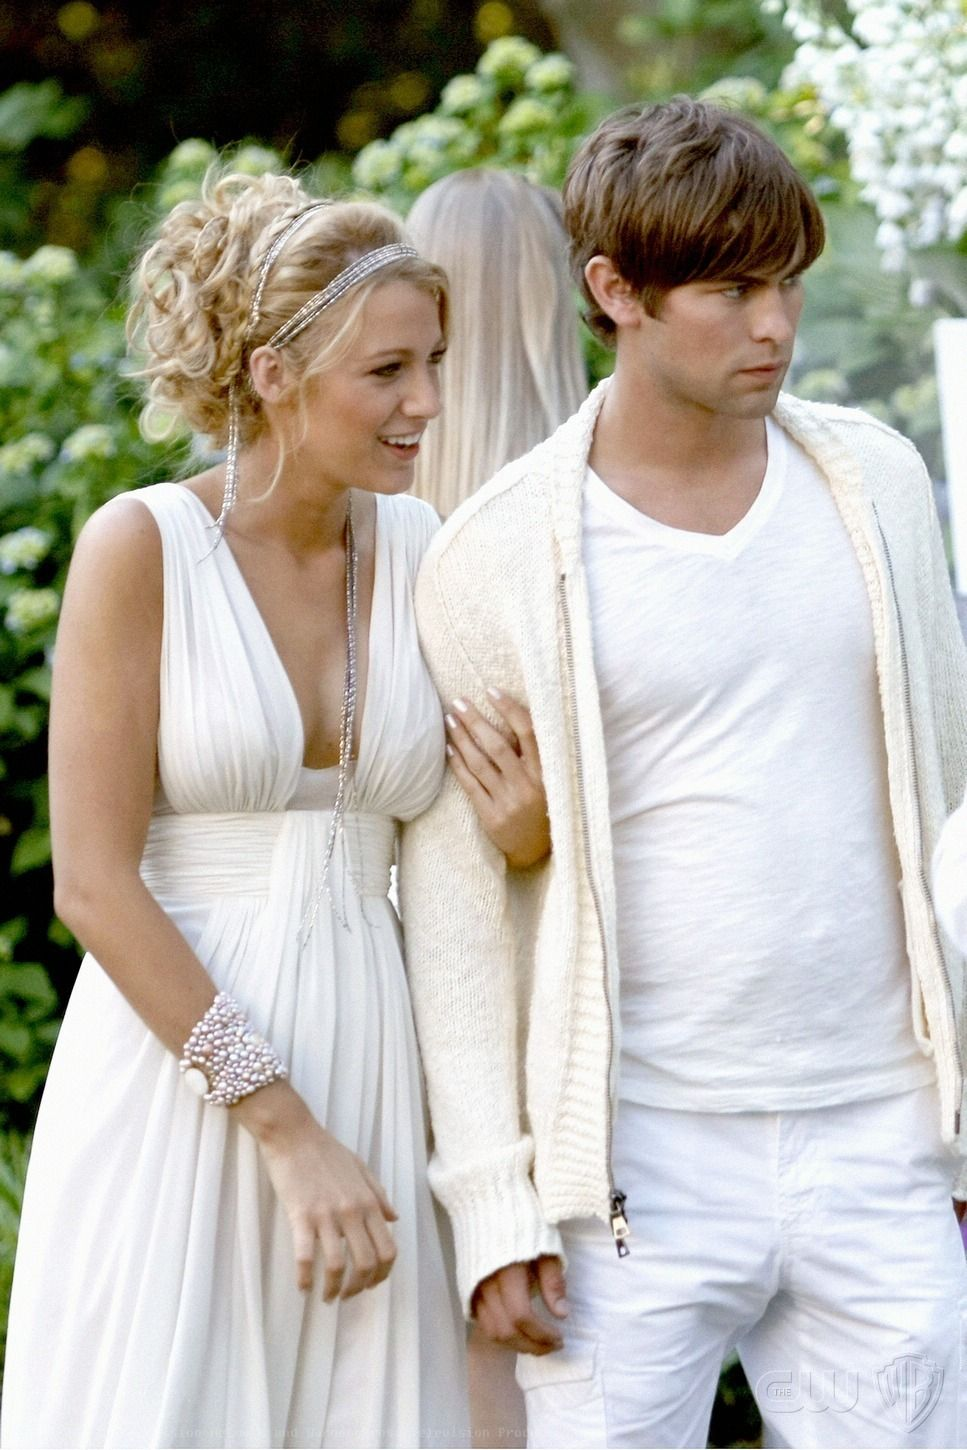 Gossip Girl - Serena and Nate | two together | Pinterest | Serien